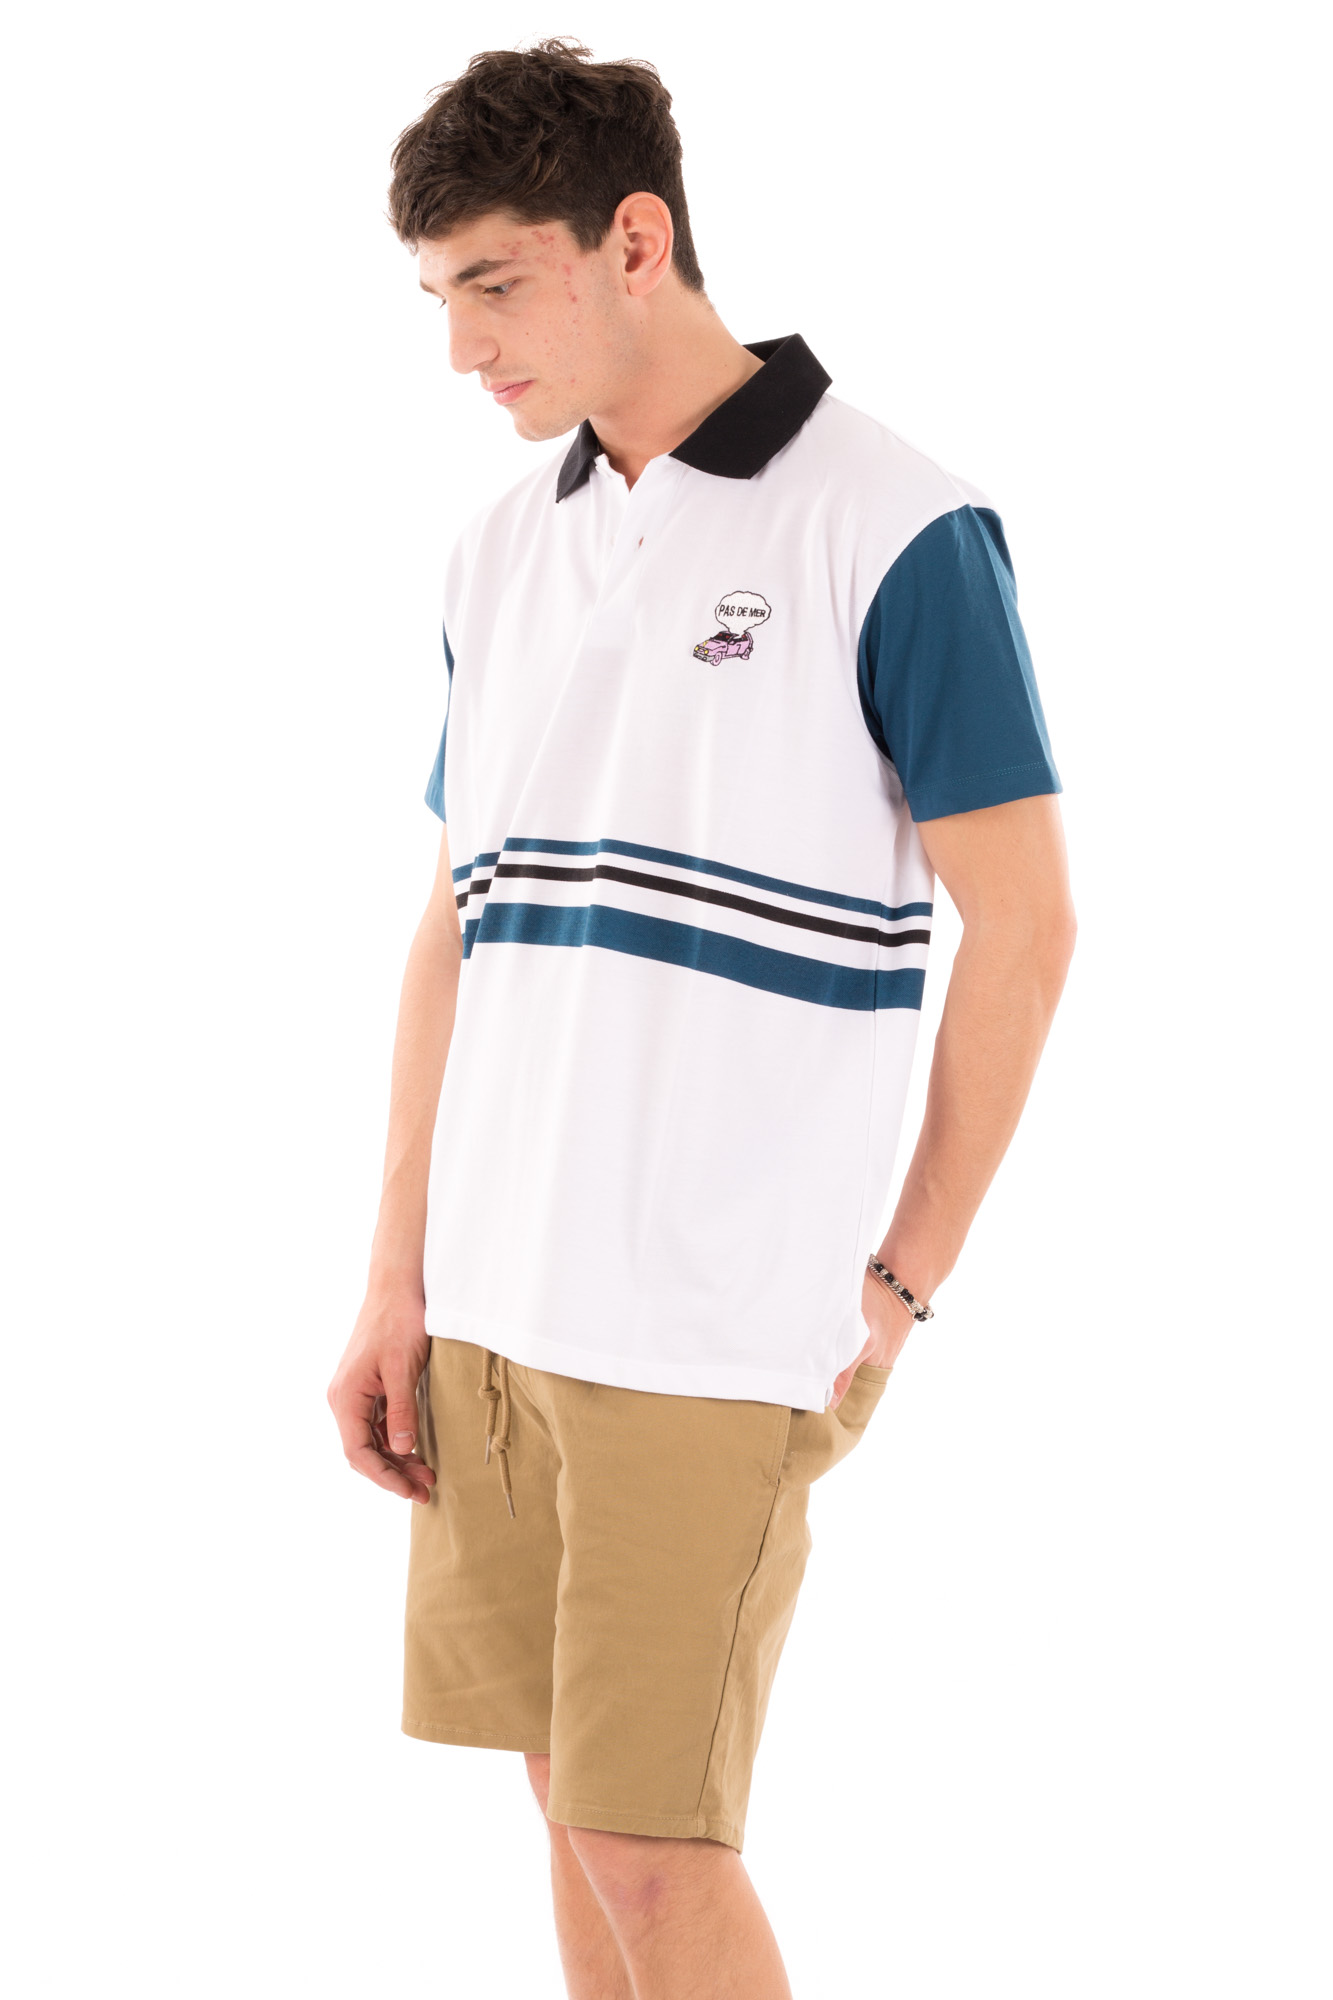 Pas De Mer - Polo t-shirt with contrast sleeves